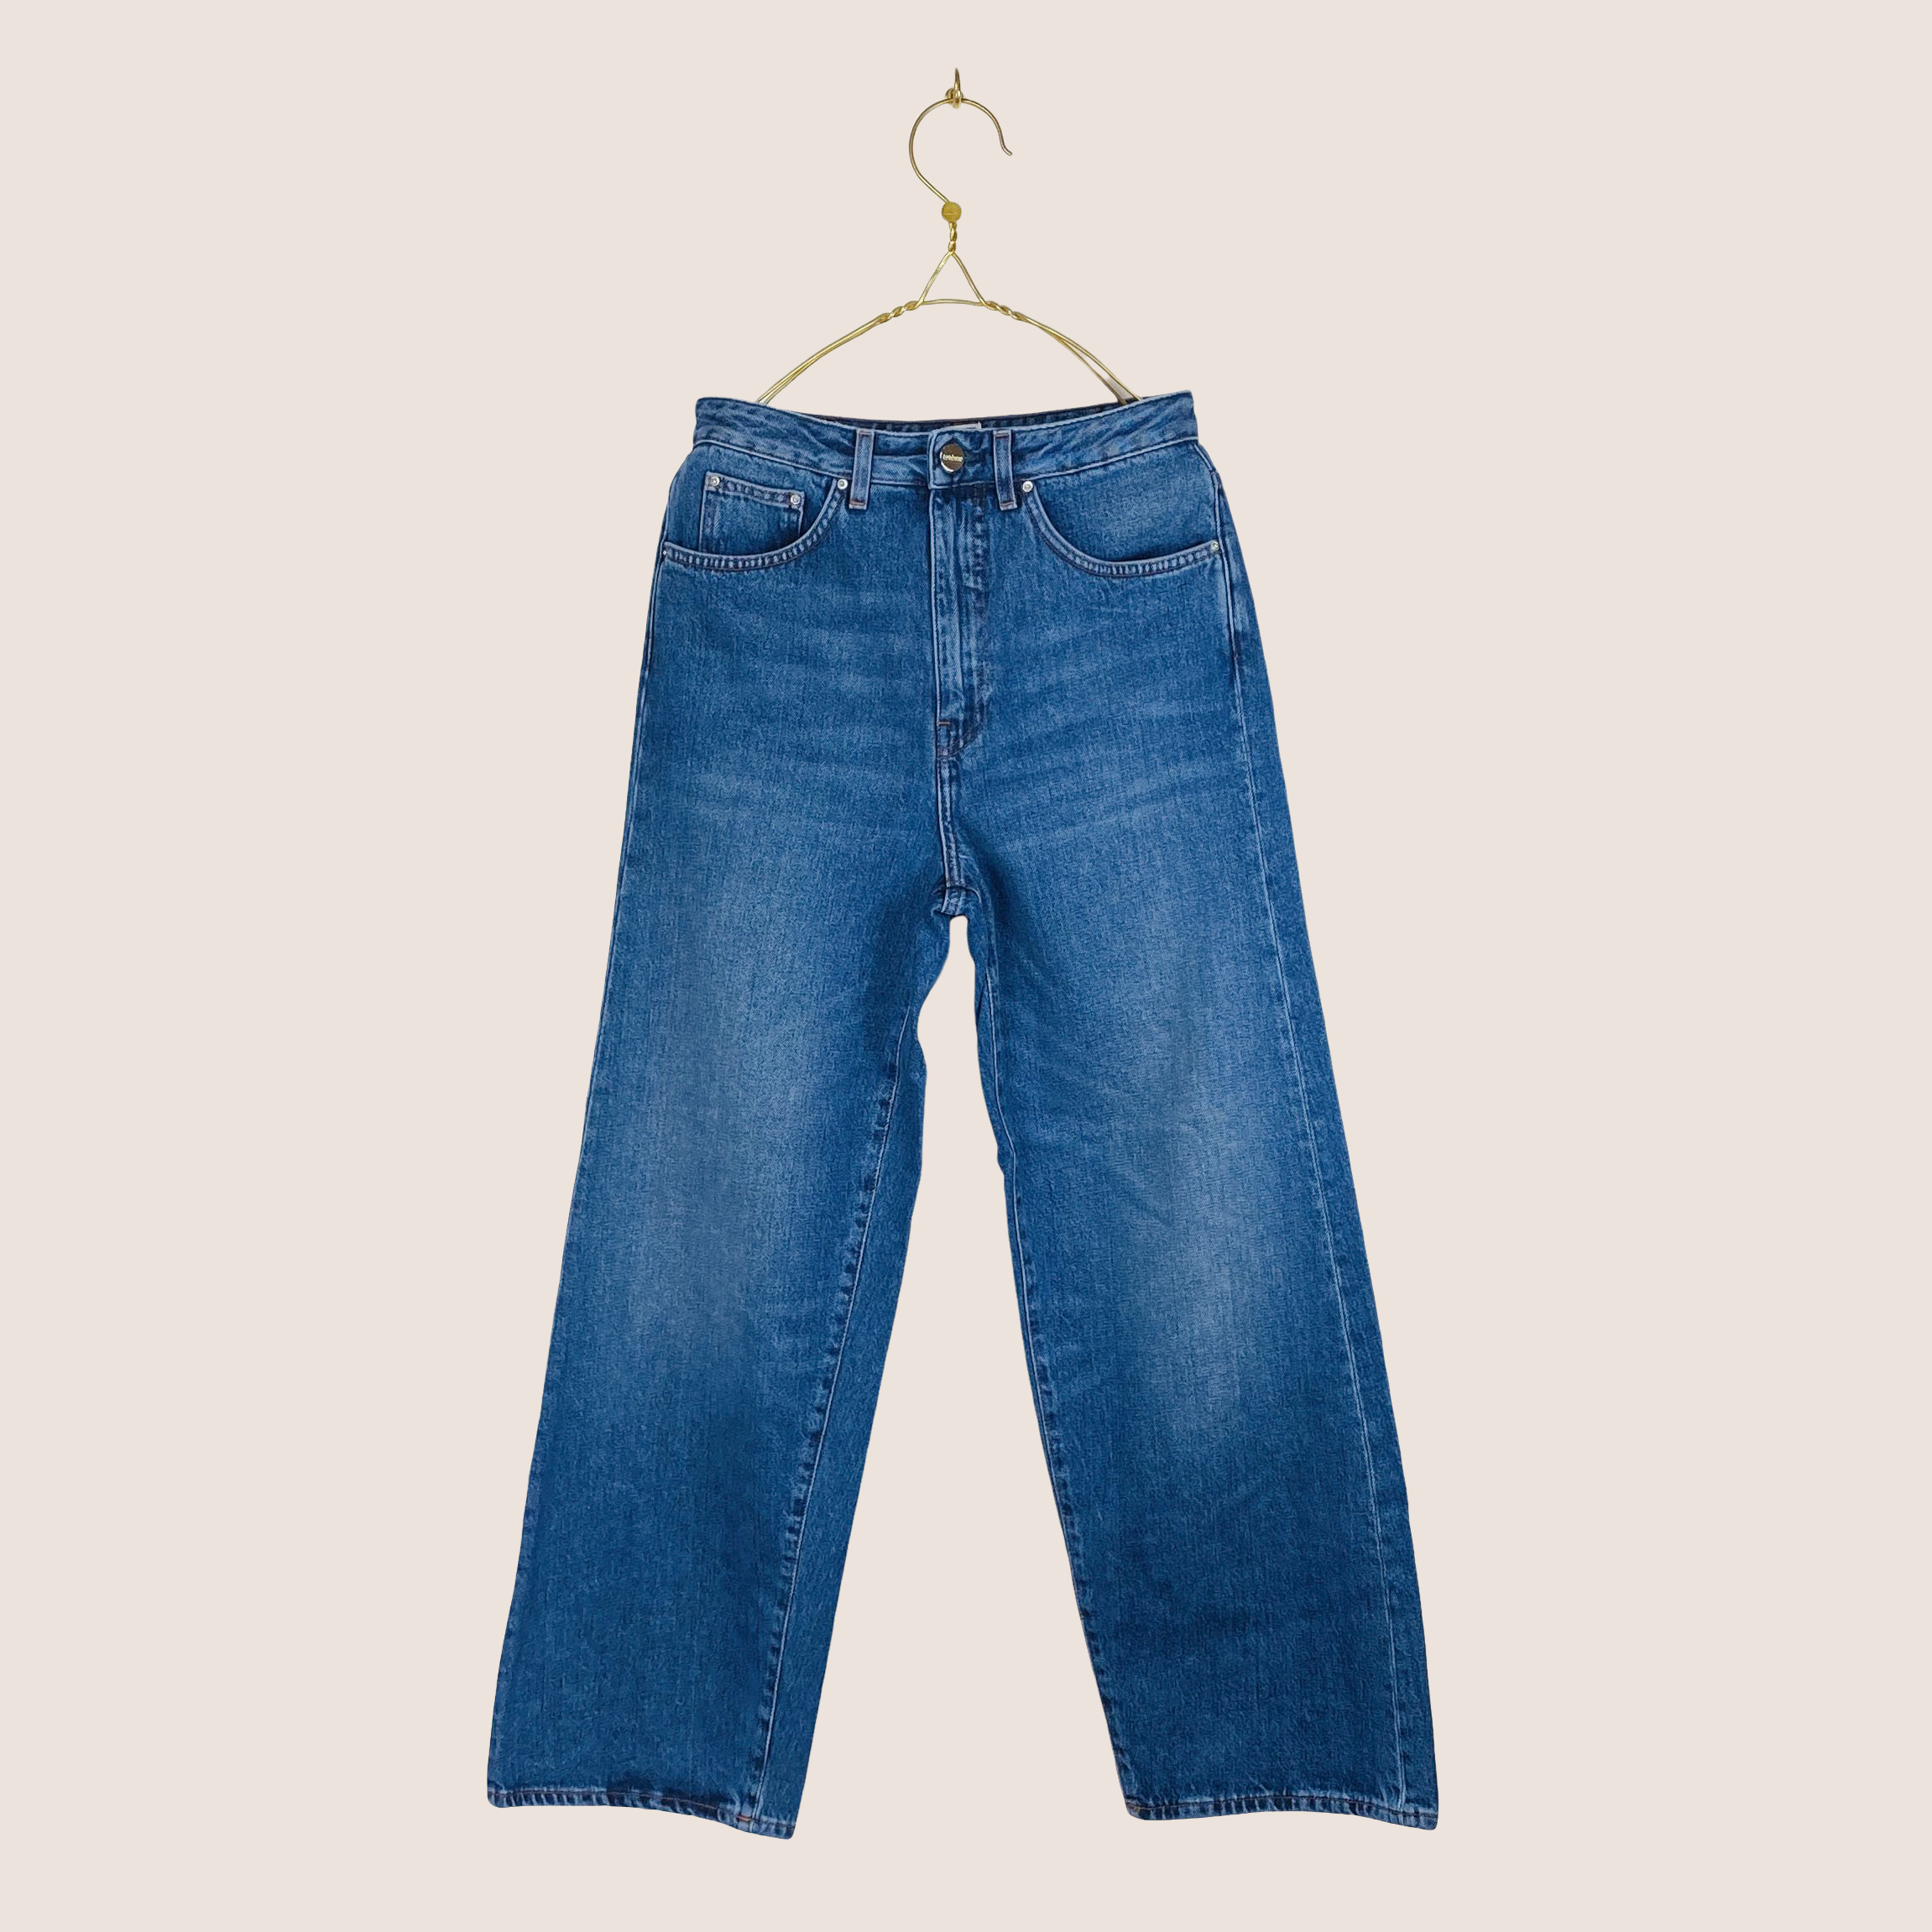 Flair Denim - Washed Blue